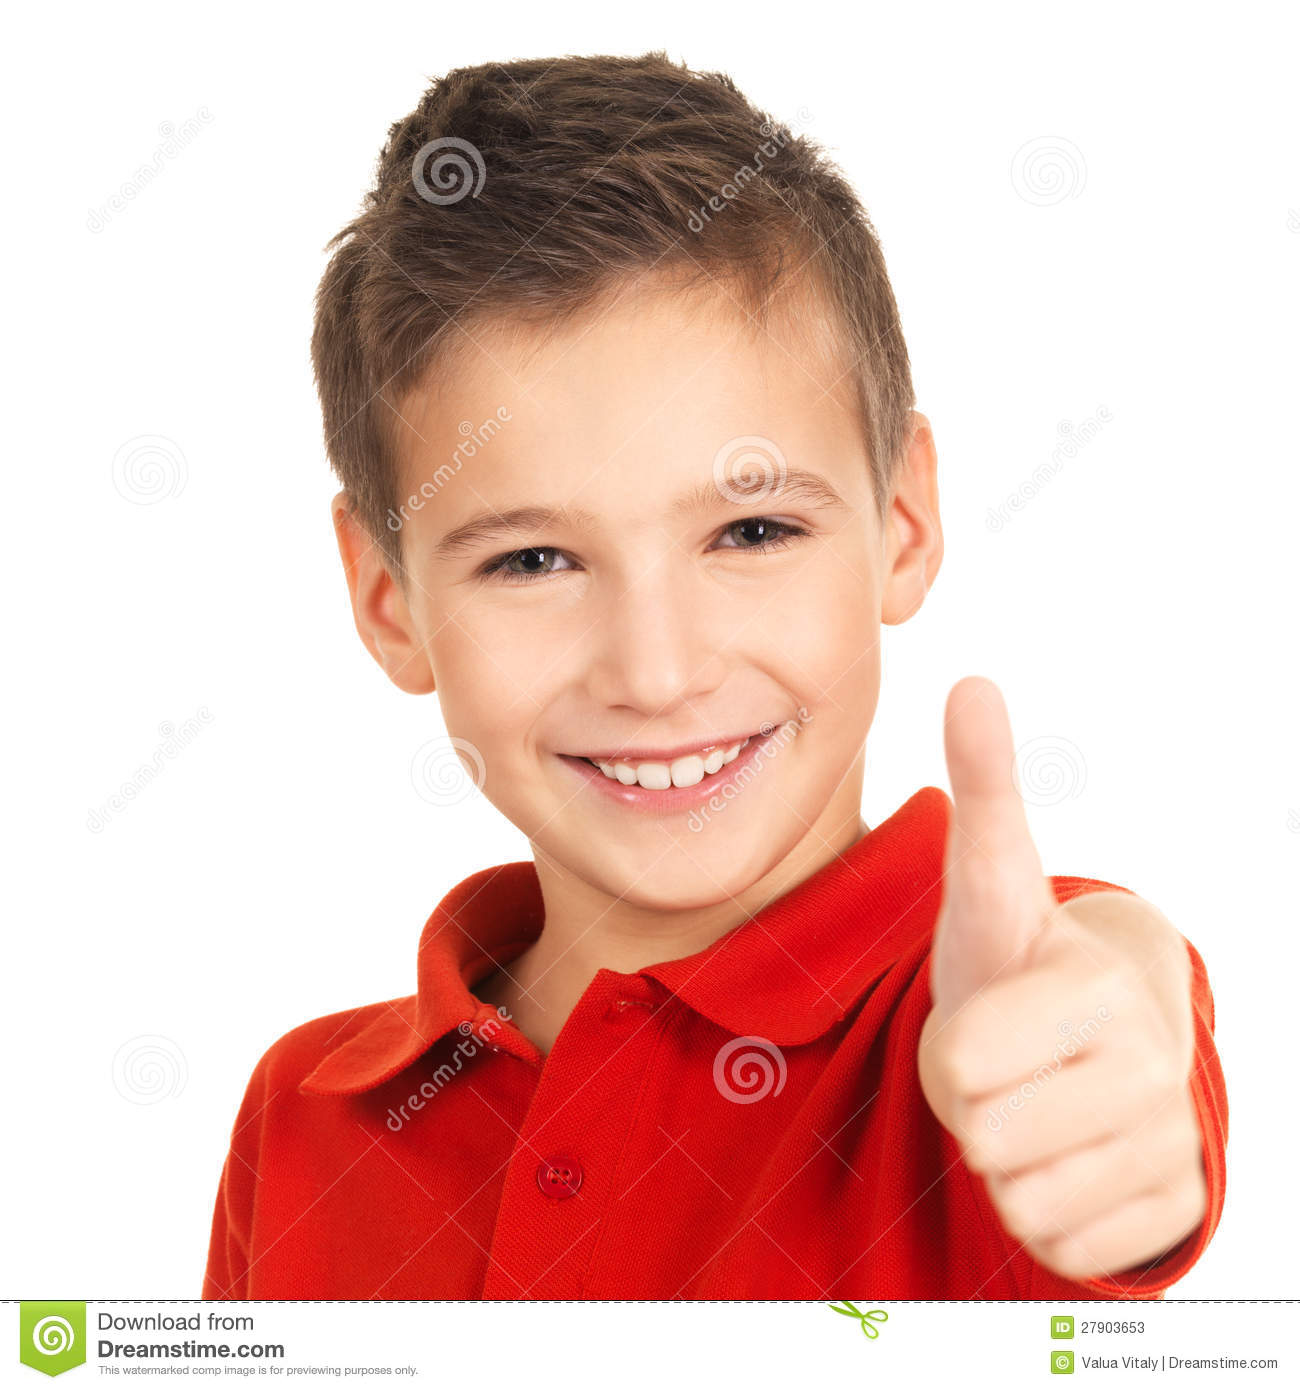 Happy Boy Showing Thumbs Up Gesture Stock Image - Image of ...